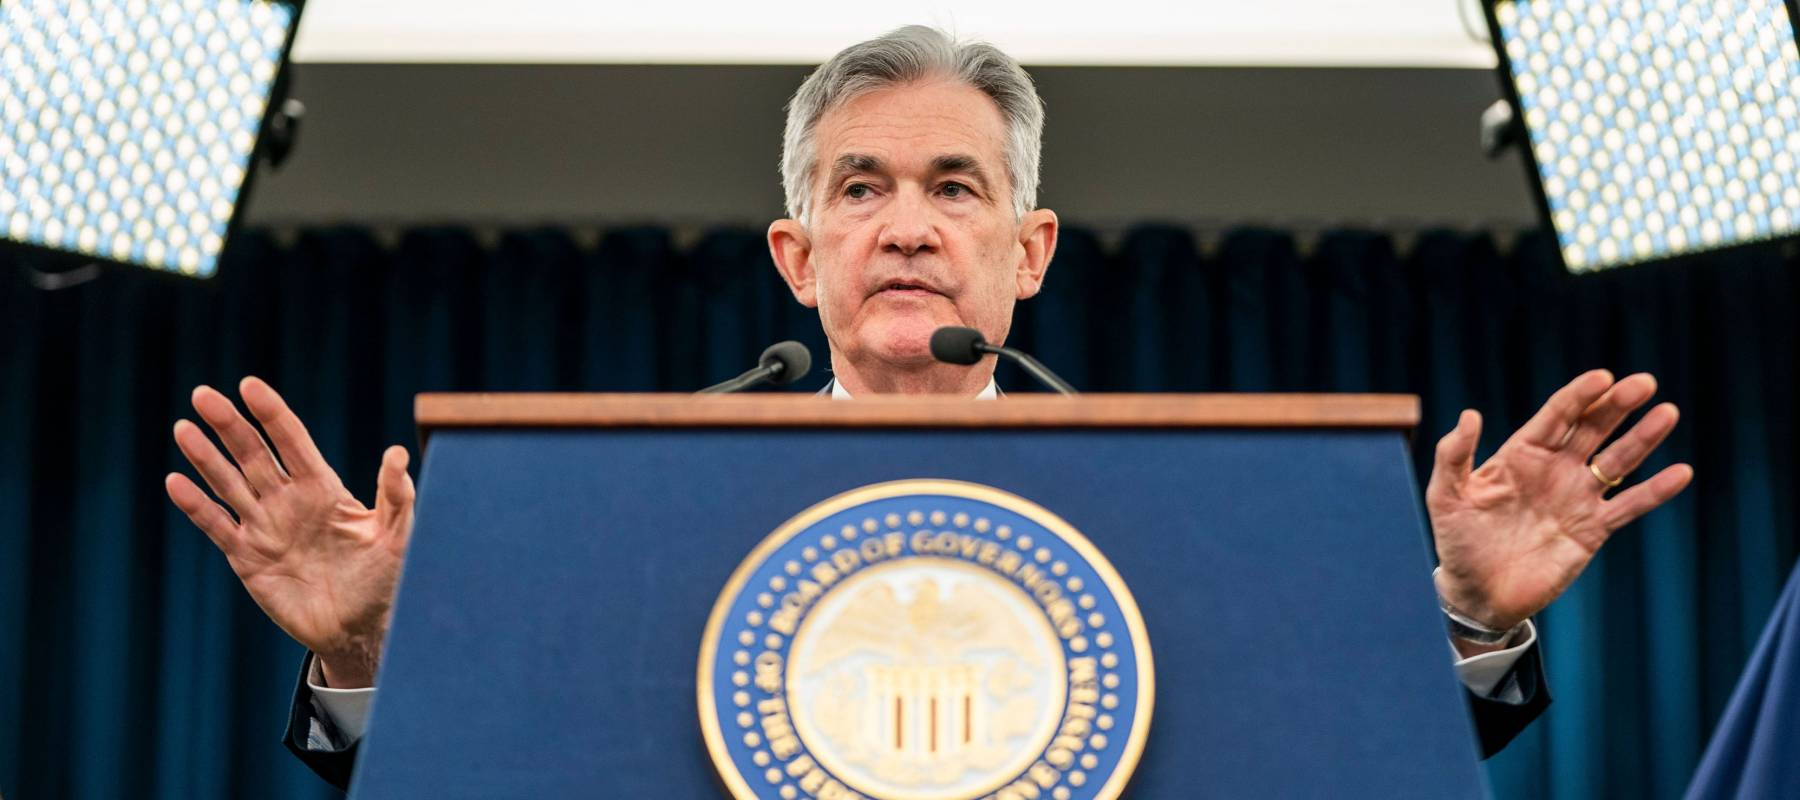 16th Chair of the Federal Reserve, Jerome Powell